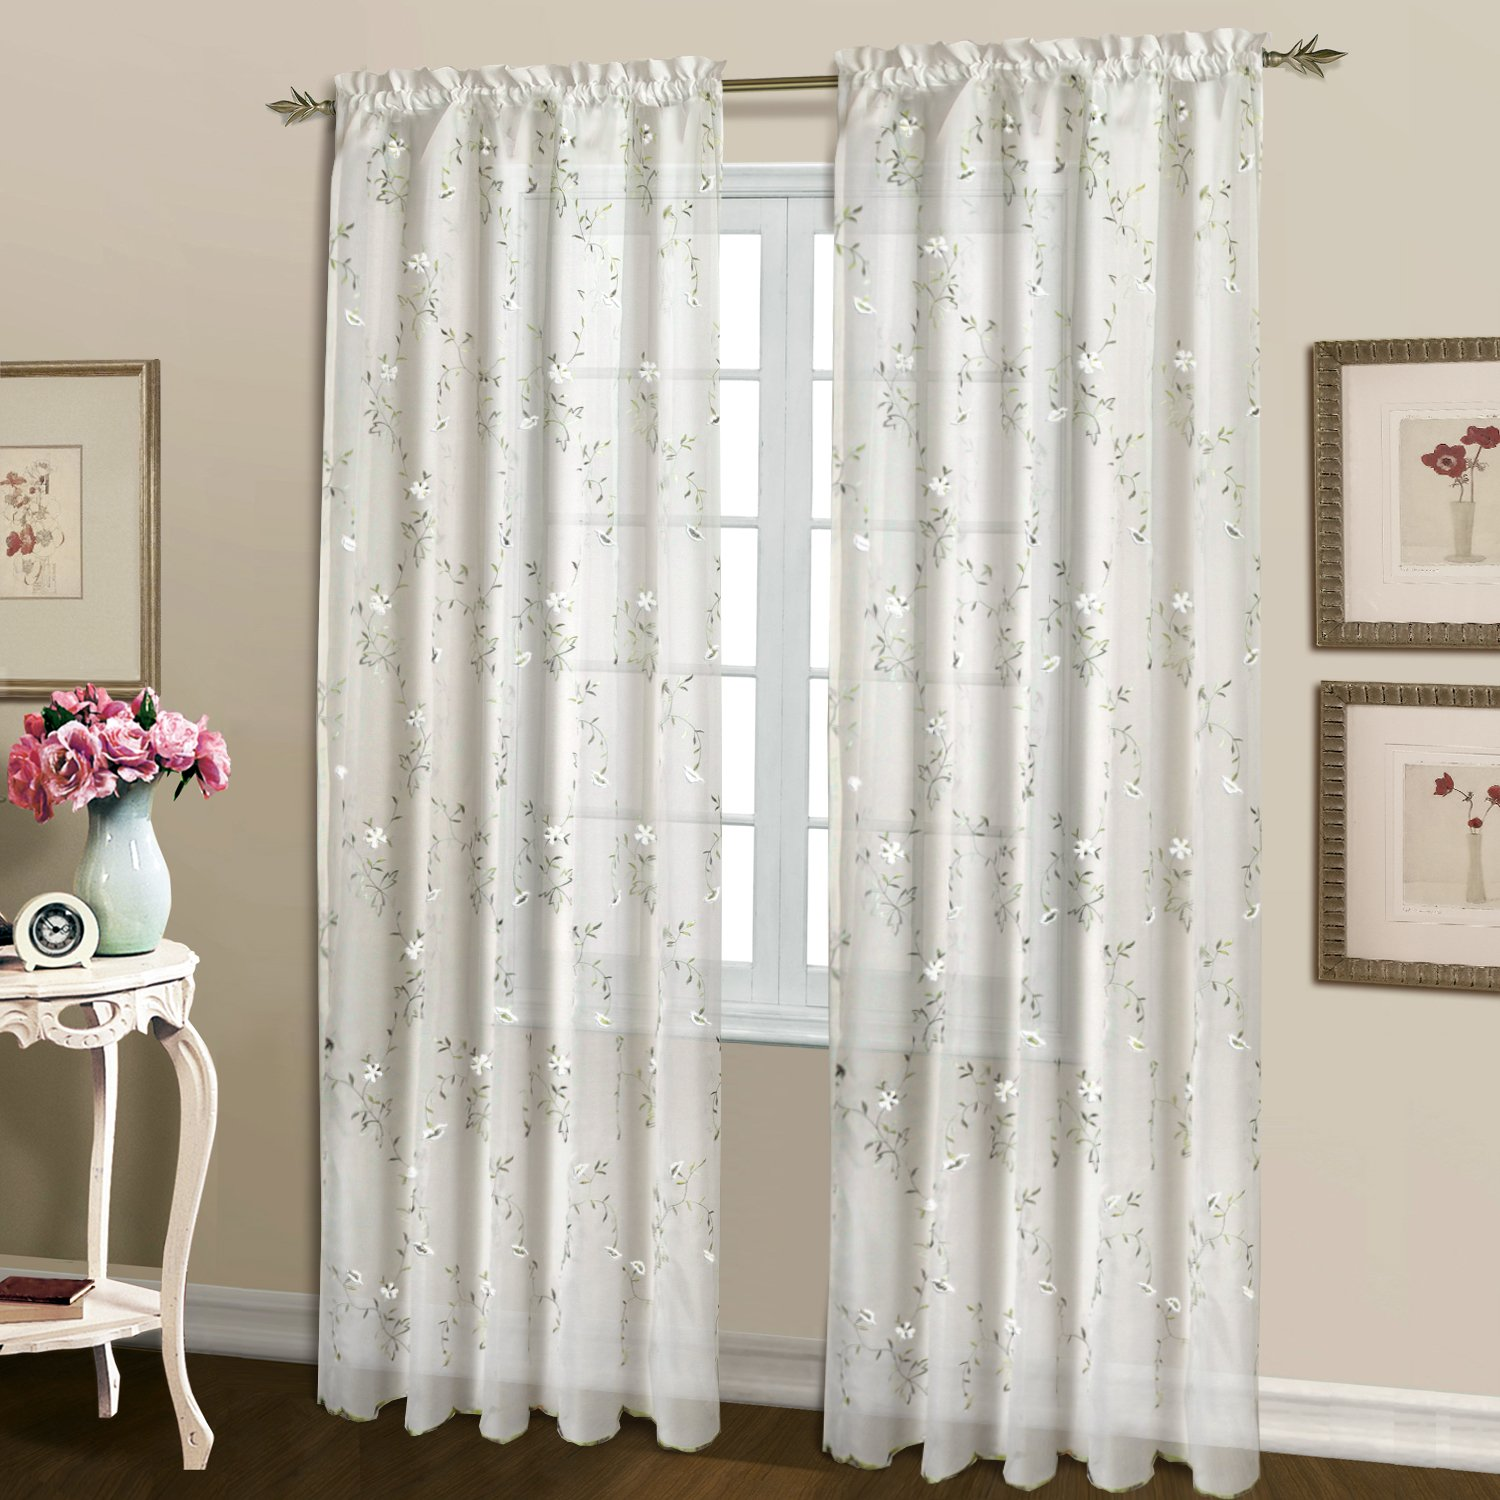 United Curtain Loretta Embroidered Sheer Shaped Valance, 52 by 18-Inch, White LOVAWH